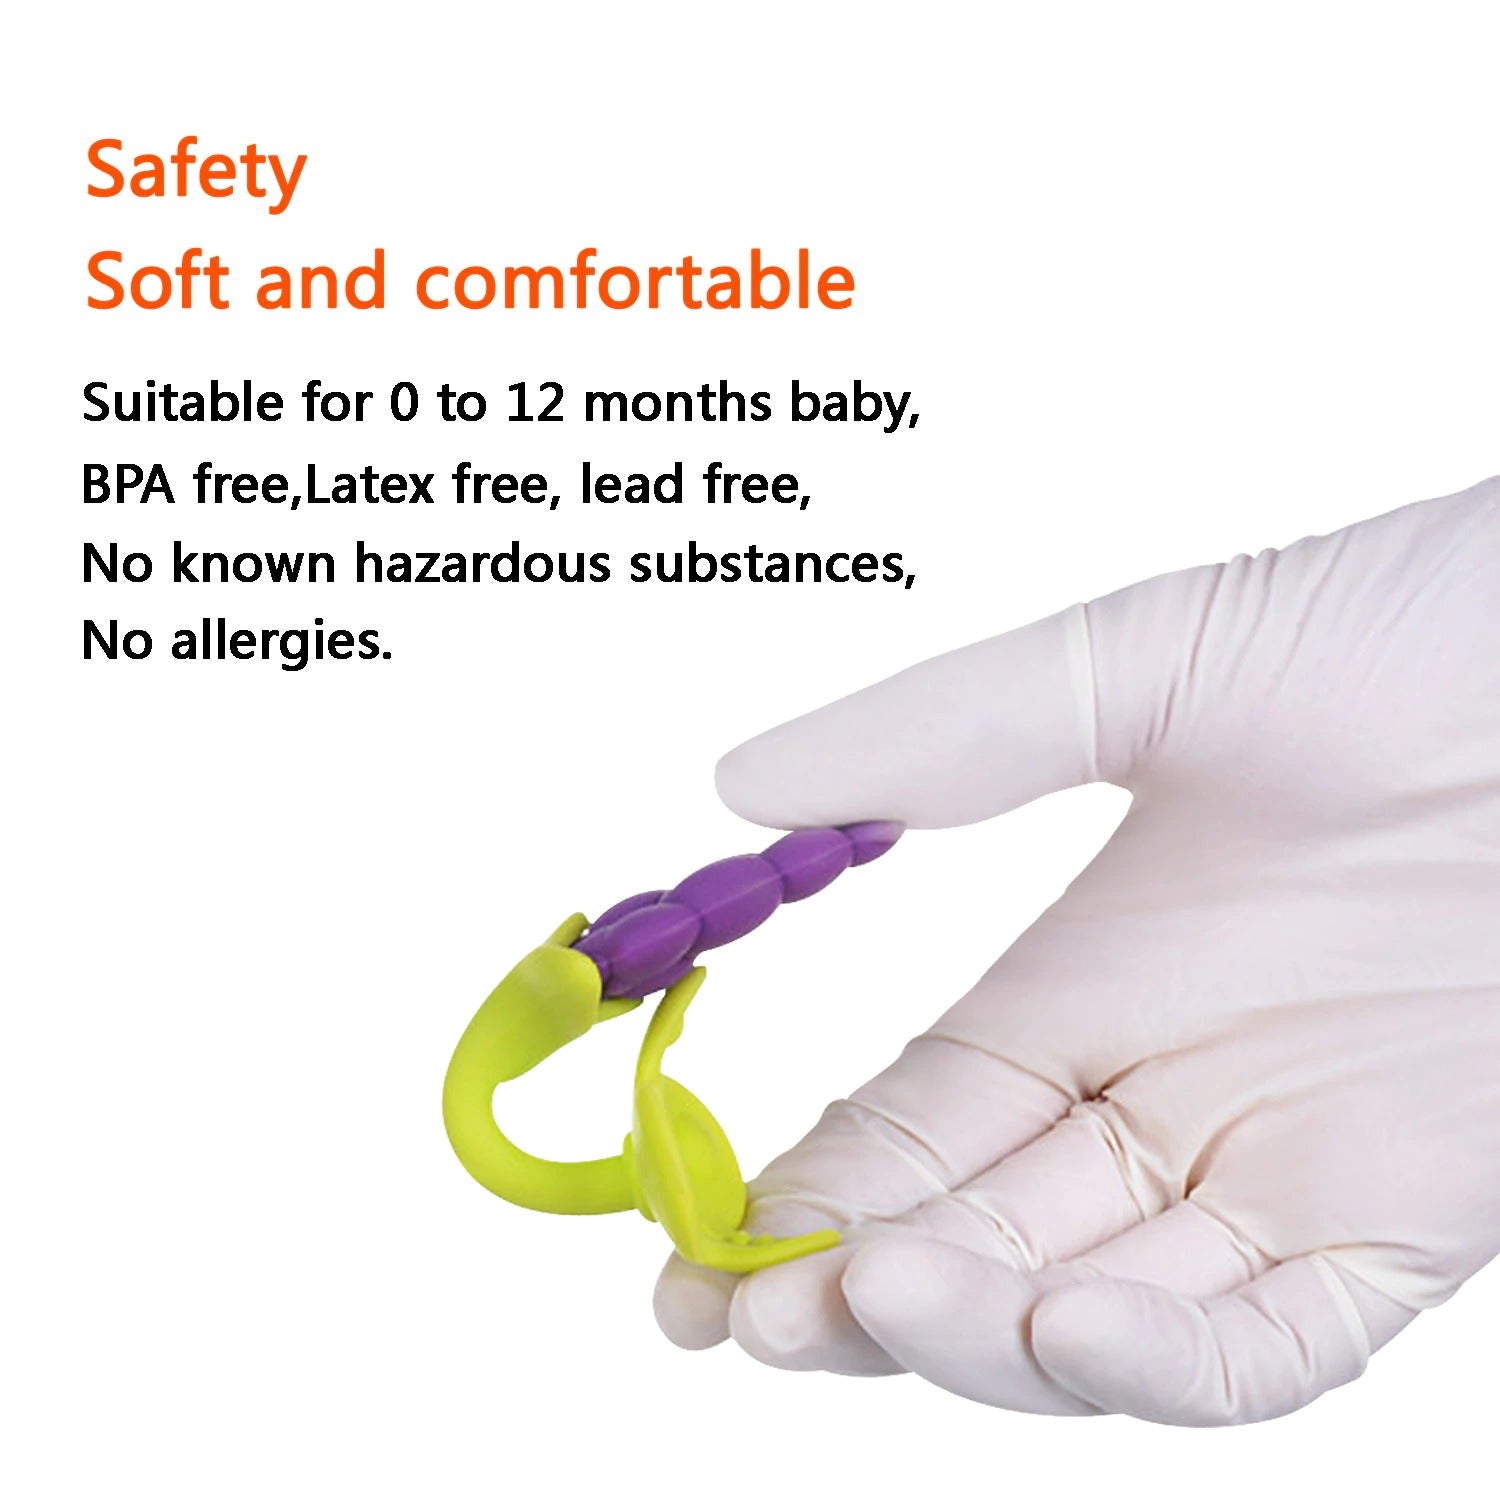 baby-teether-toys-toddle-safe-bpa-free-b_description-44